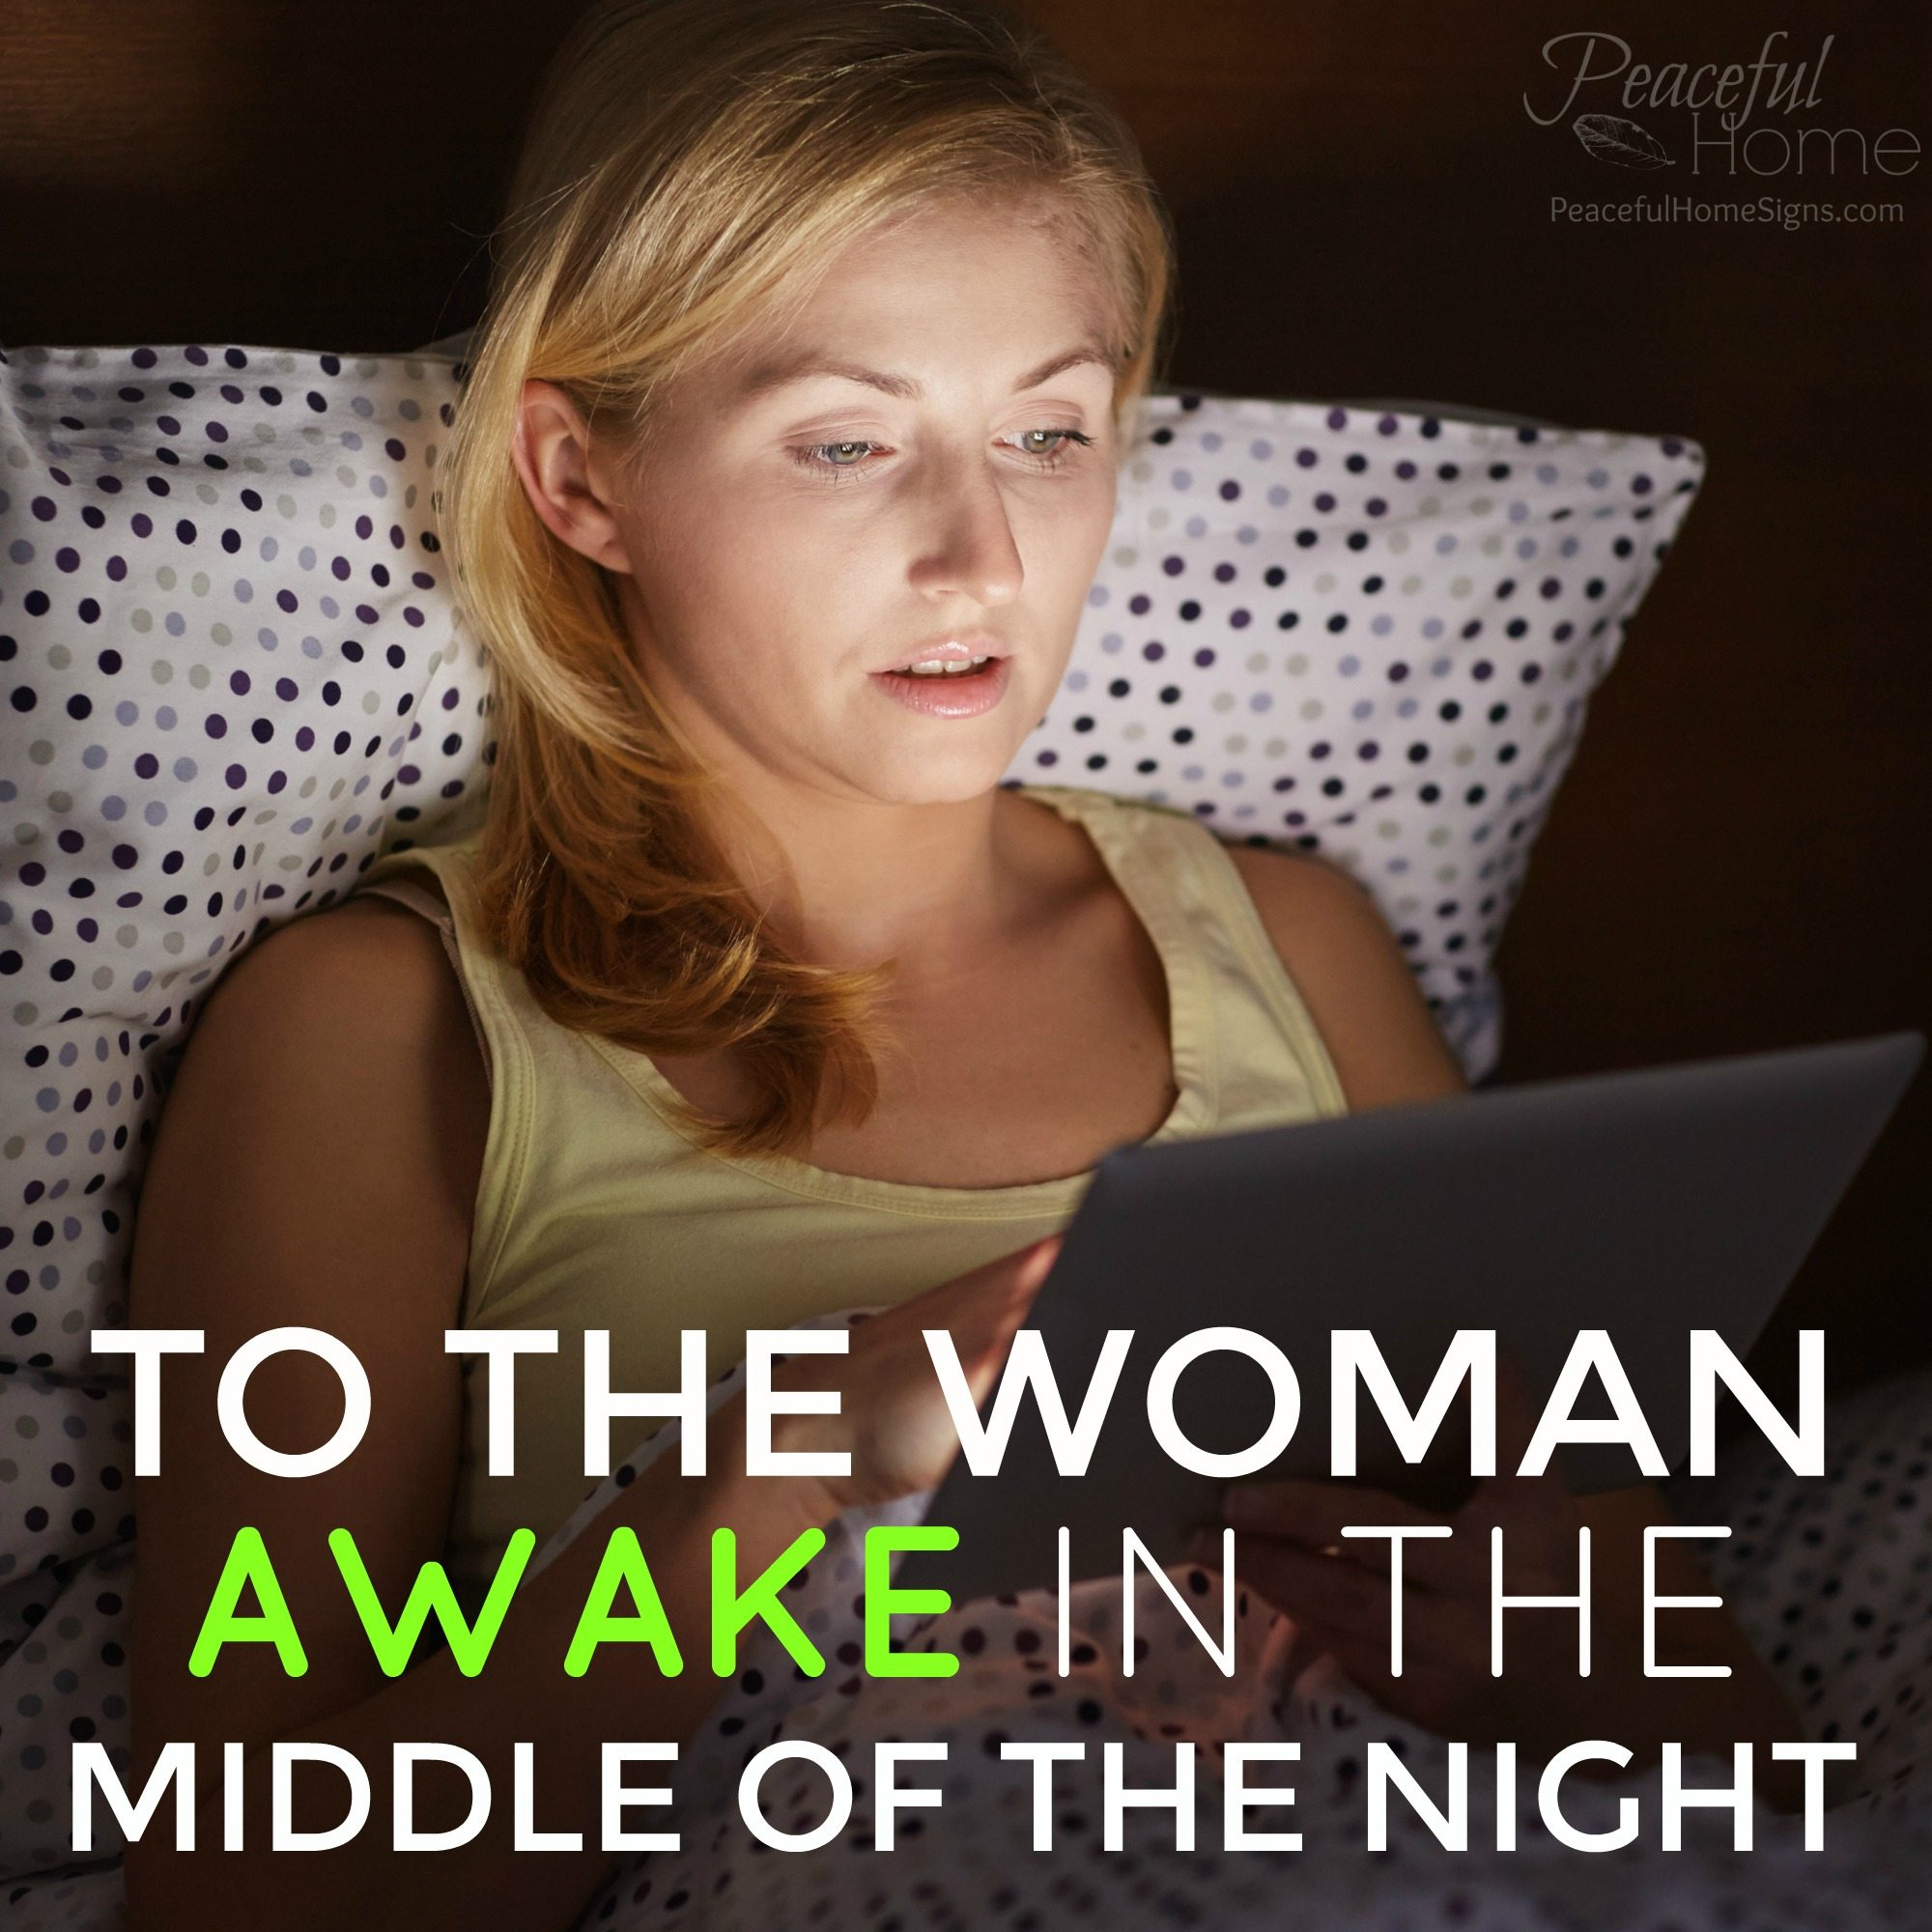 To the woman awake in the middle of the night